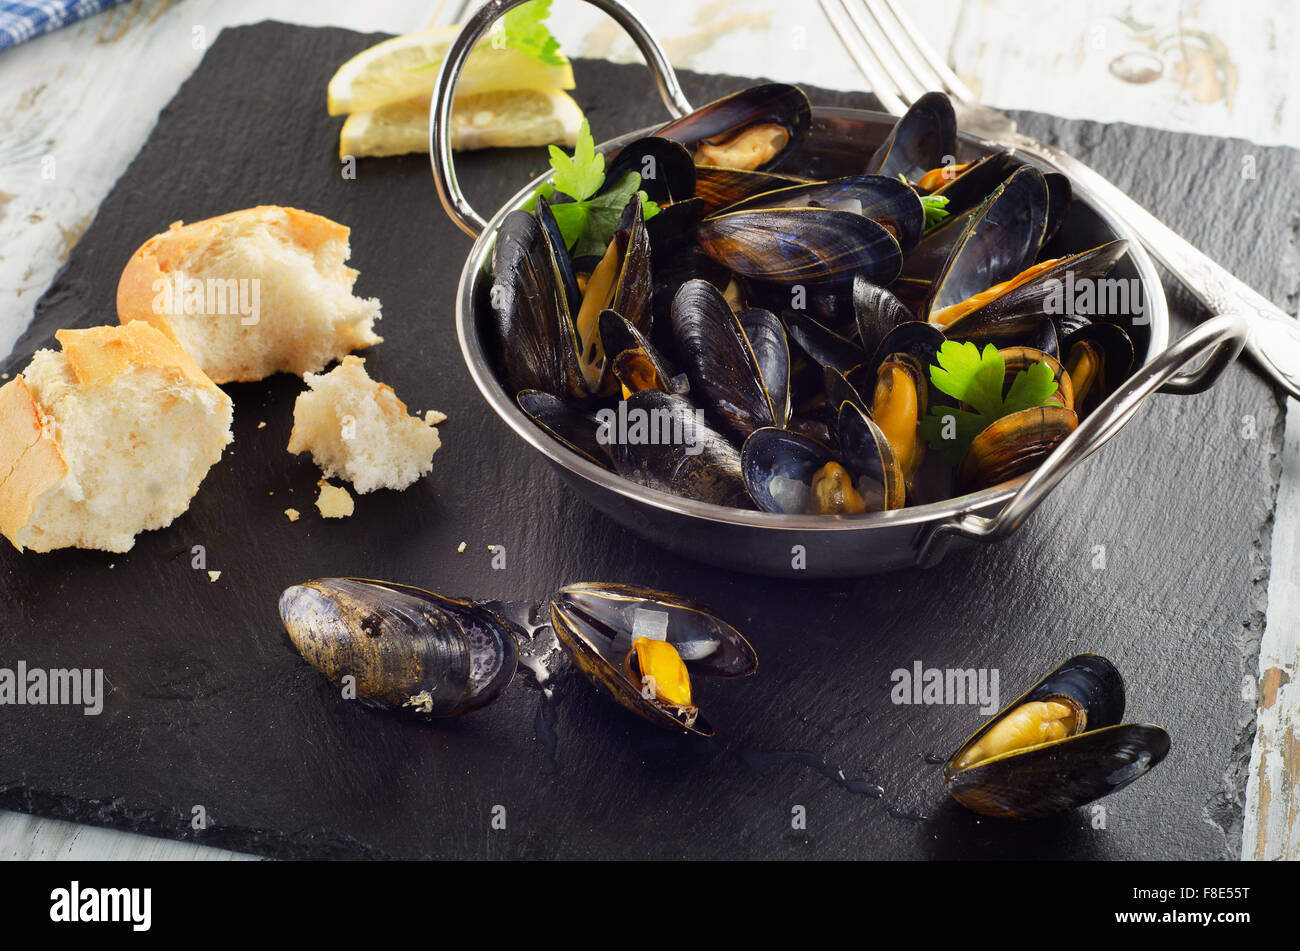 Boiled mussels in cooking dish on dark background. Selective focus Stock Photo